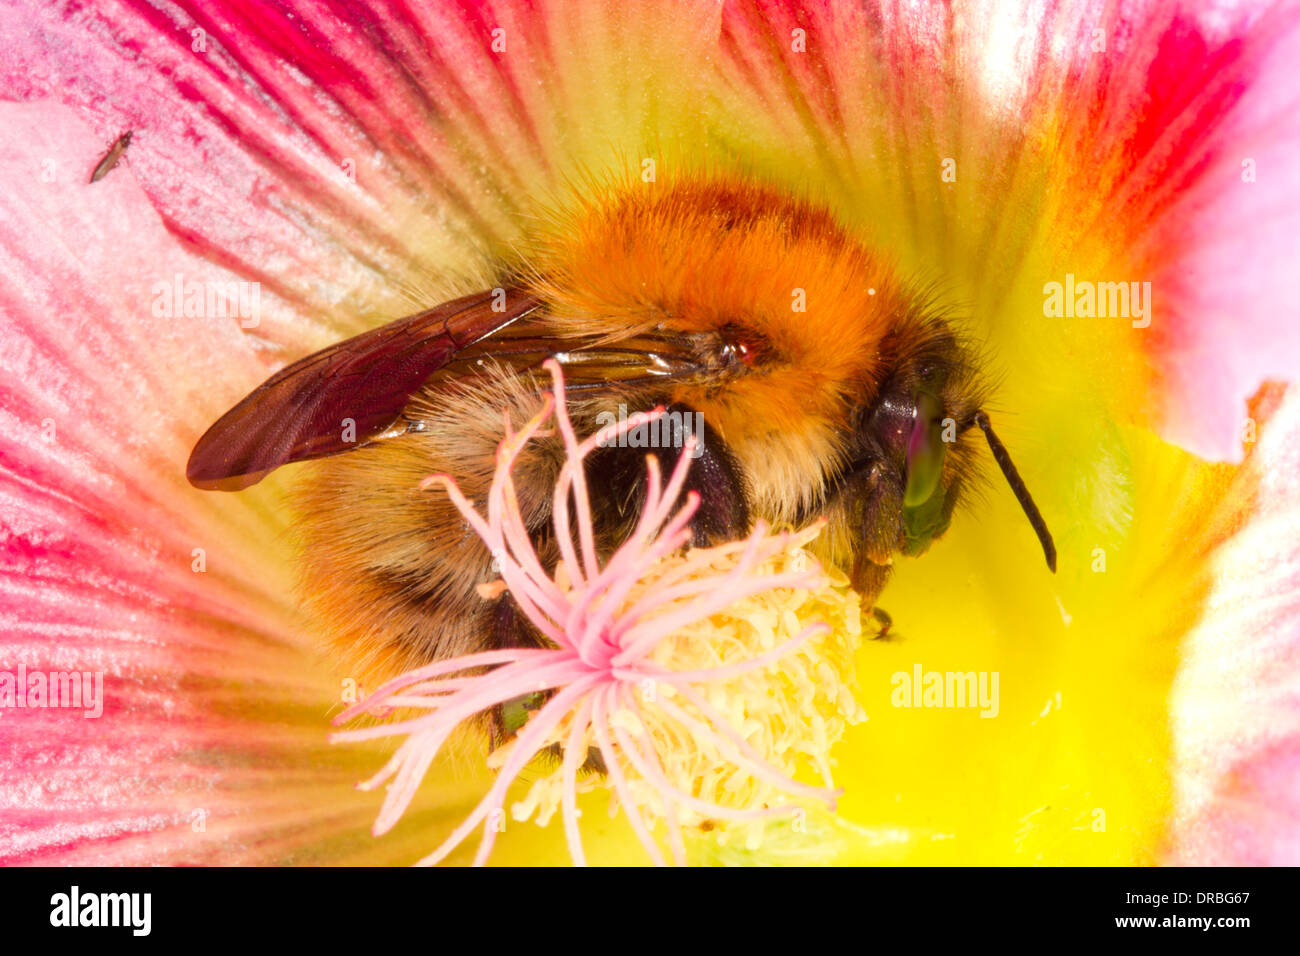 Common Carder Bumblebee (Bombus pascuorum) new queen in a hollyhock flower in a garden. Powys, Wales. September. - Stock Image